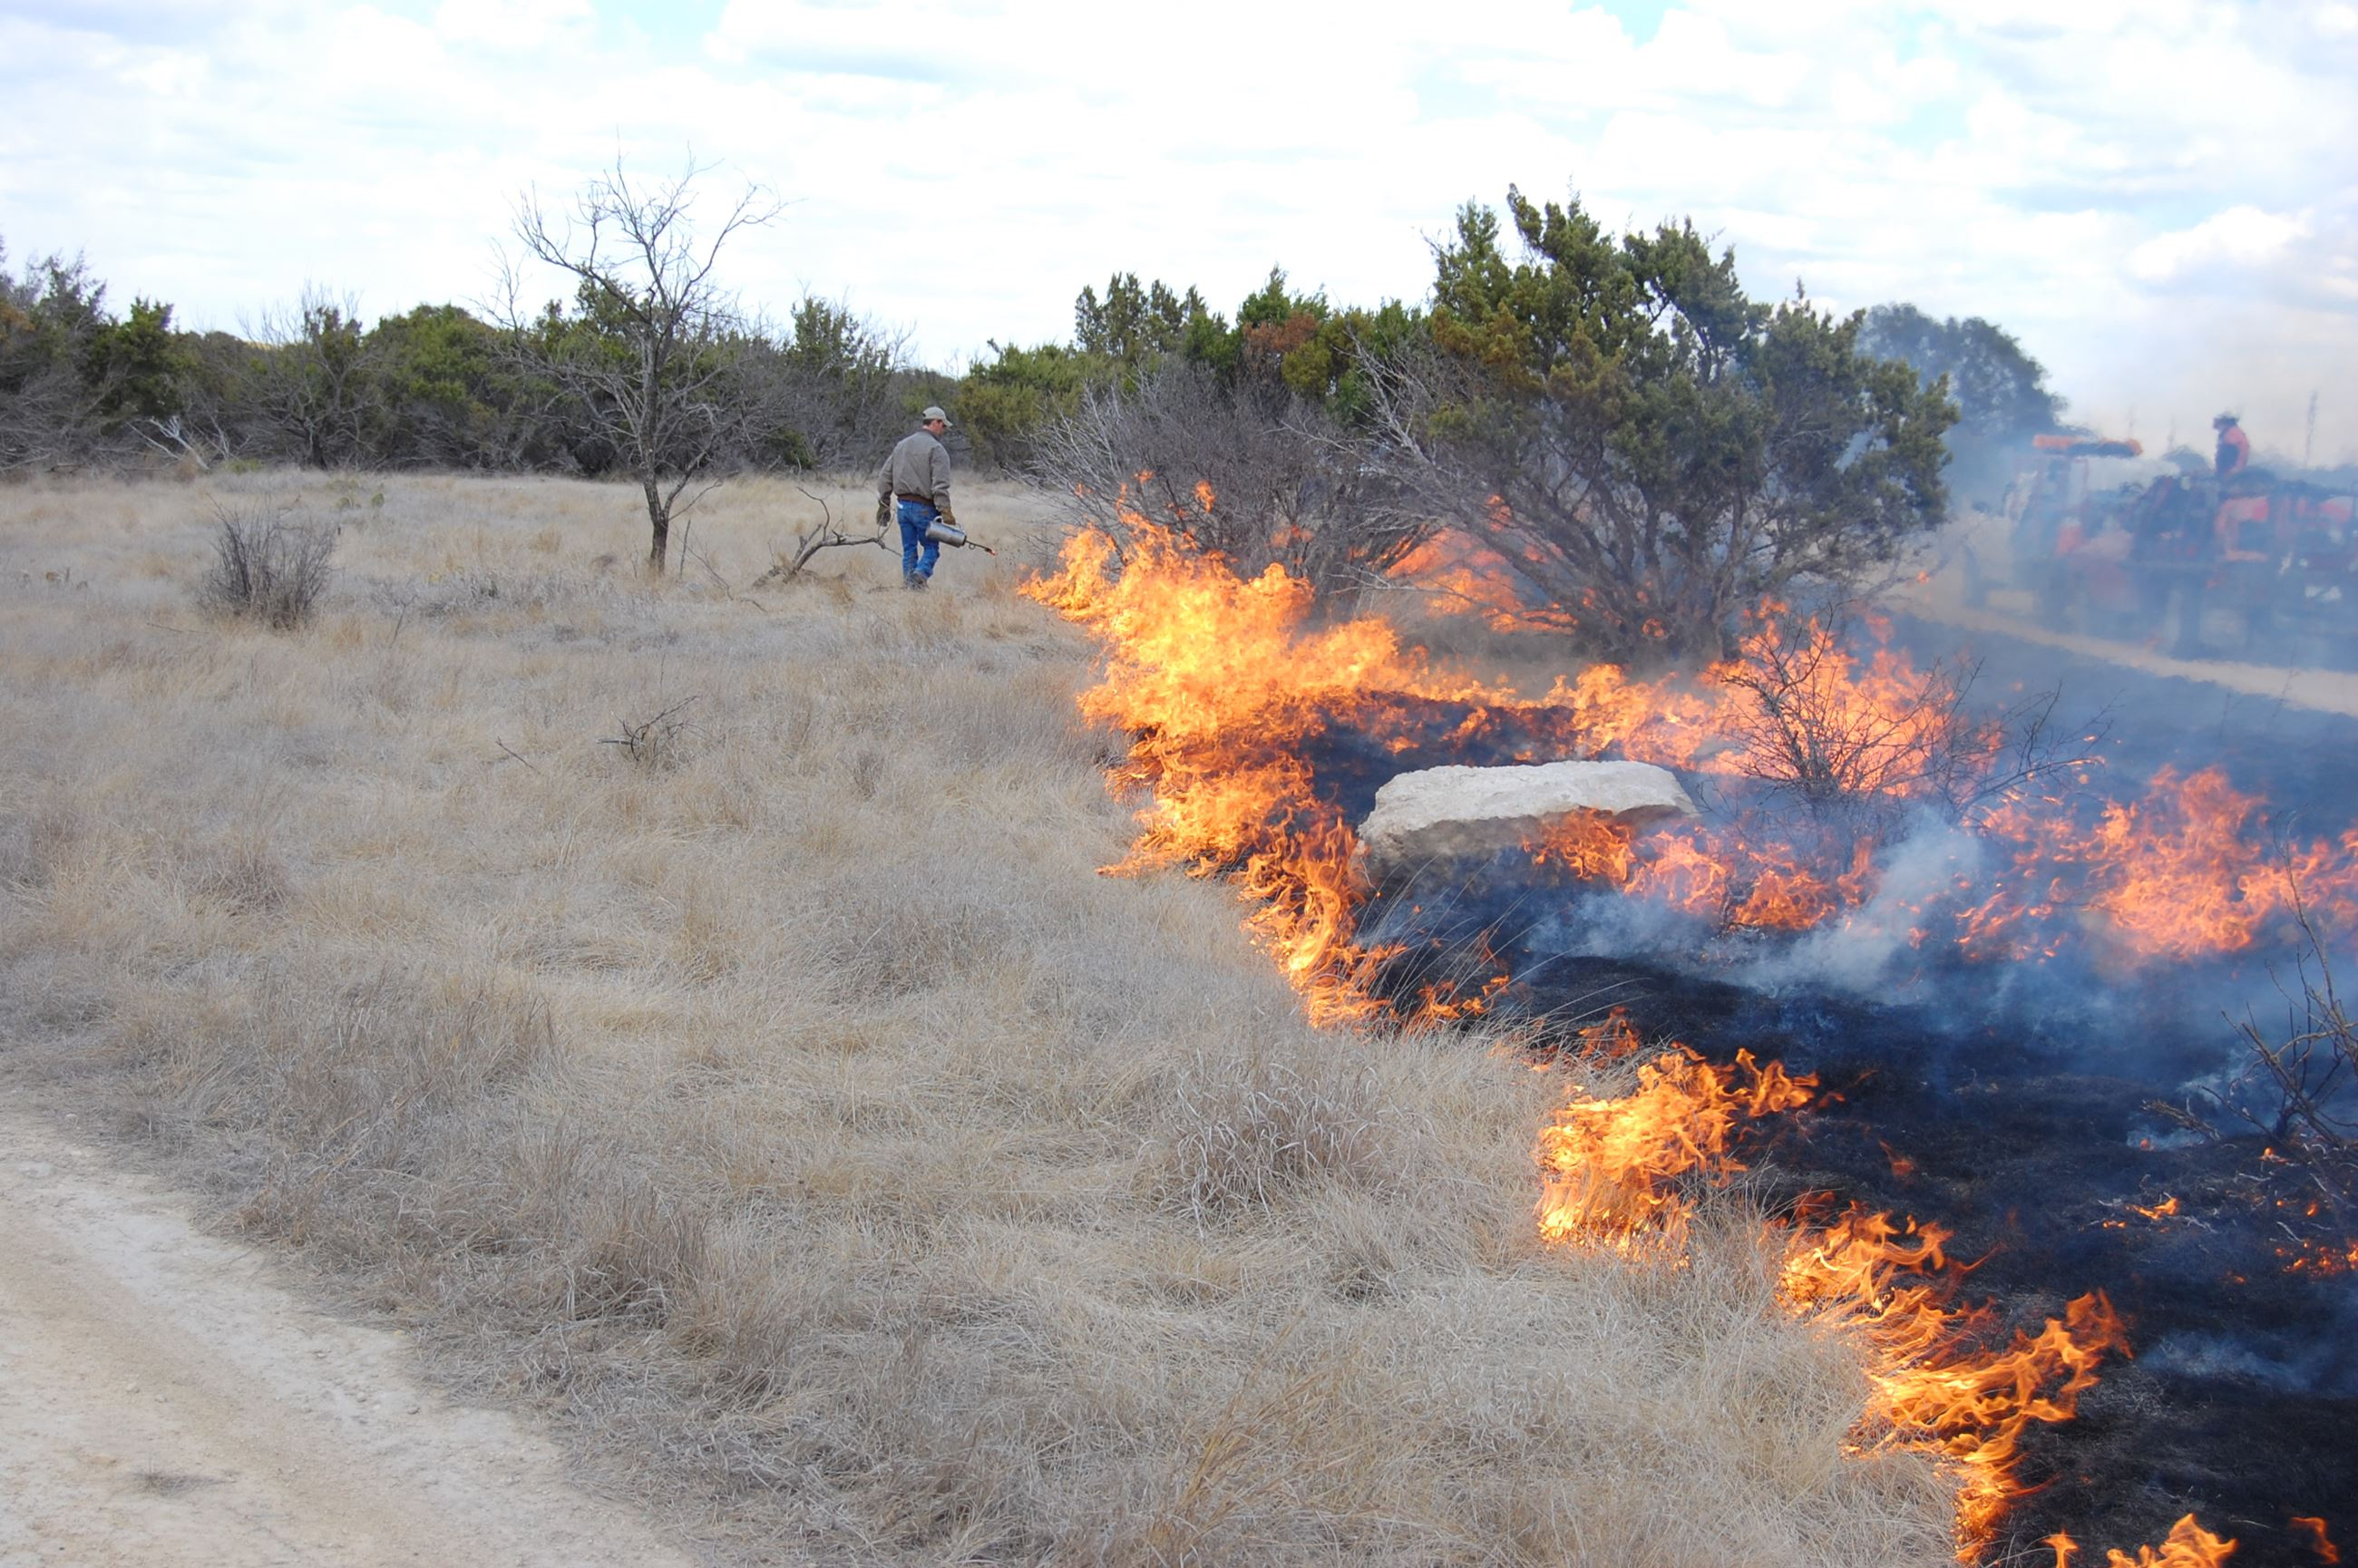 Man Operating a Controlled Grass Fire